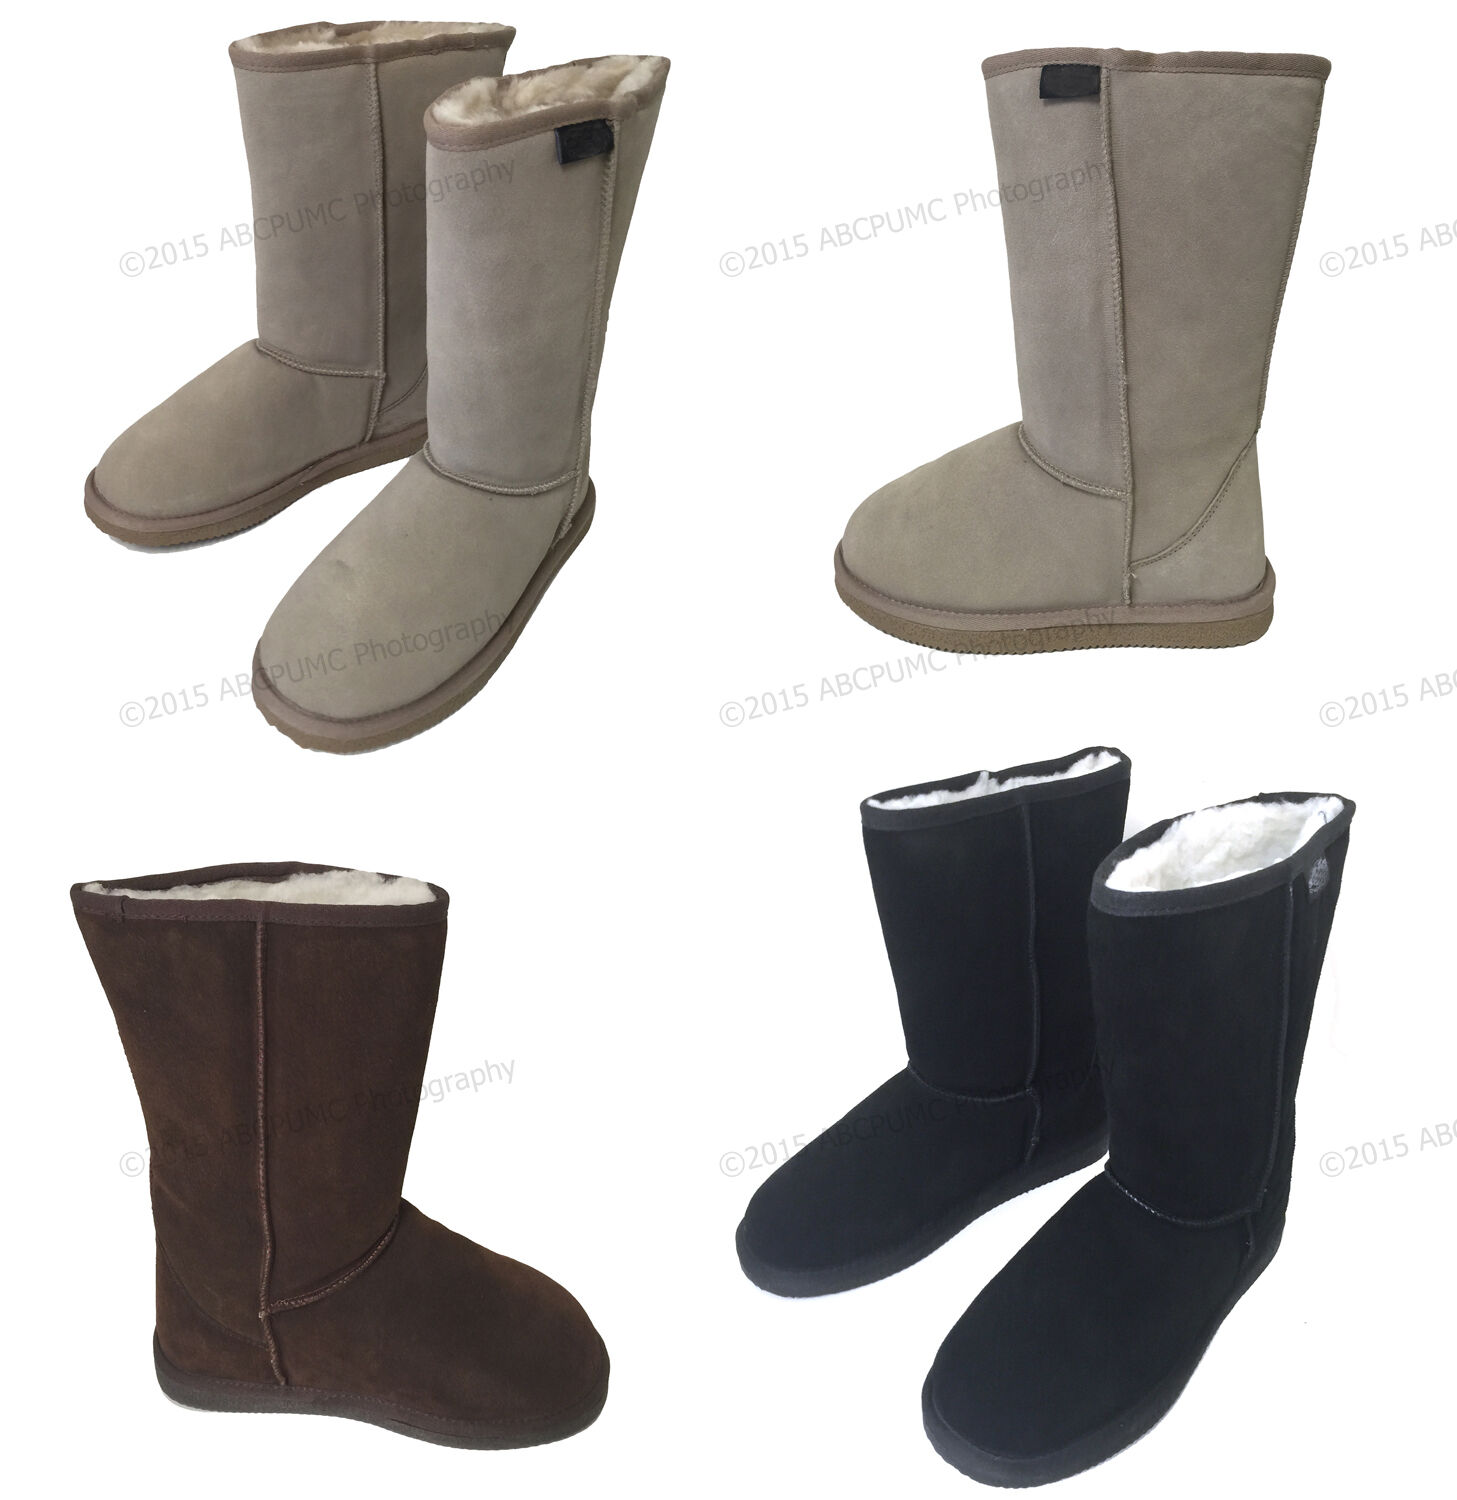 "Women's Winter Boots Fashion Suede 10"" Mid Calf Shearling Warm Fur Shoes, Sizes"